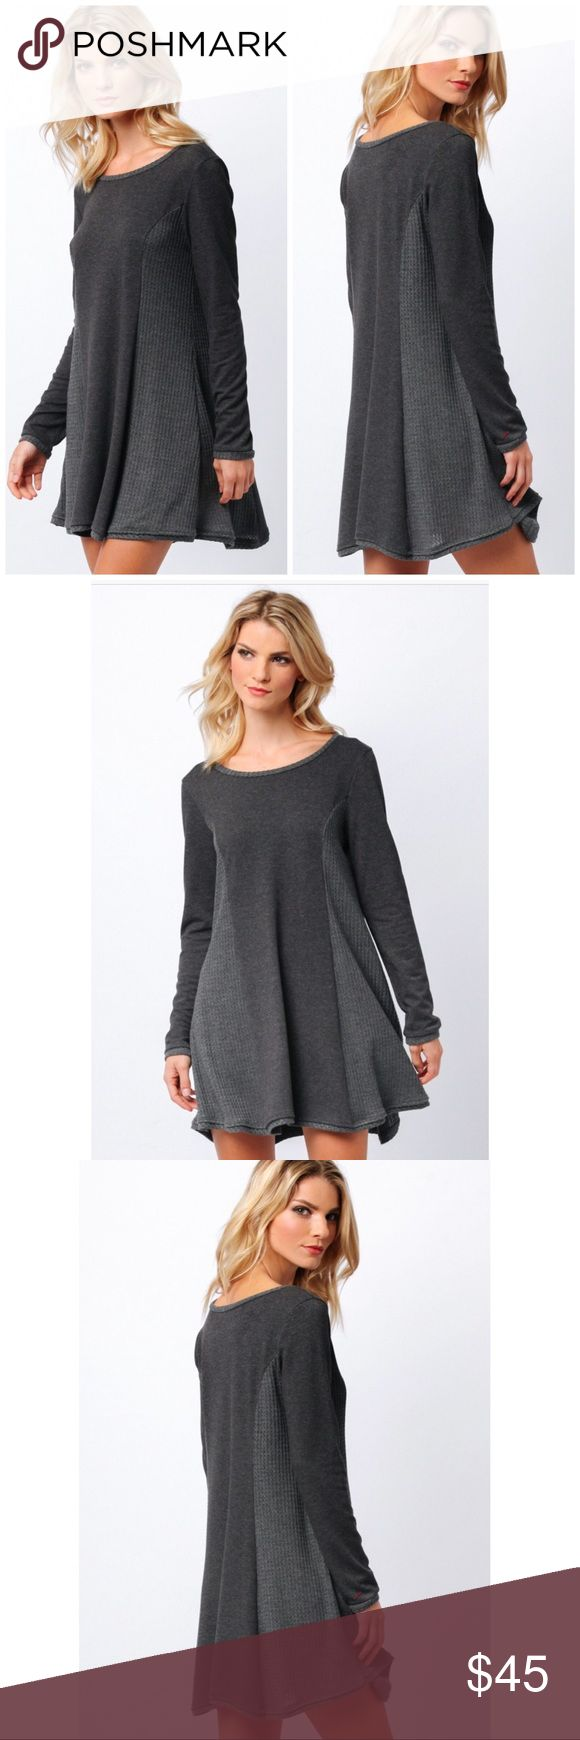 """Lazy Sunday waffle Knit Tunic dress Casual weekend Tunic dress in charcoal and grey combo, scoop neck, long sleeves with contrast trim. Approx length 32"""". Available in S-M-L Dresses Mini"""